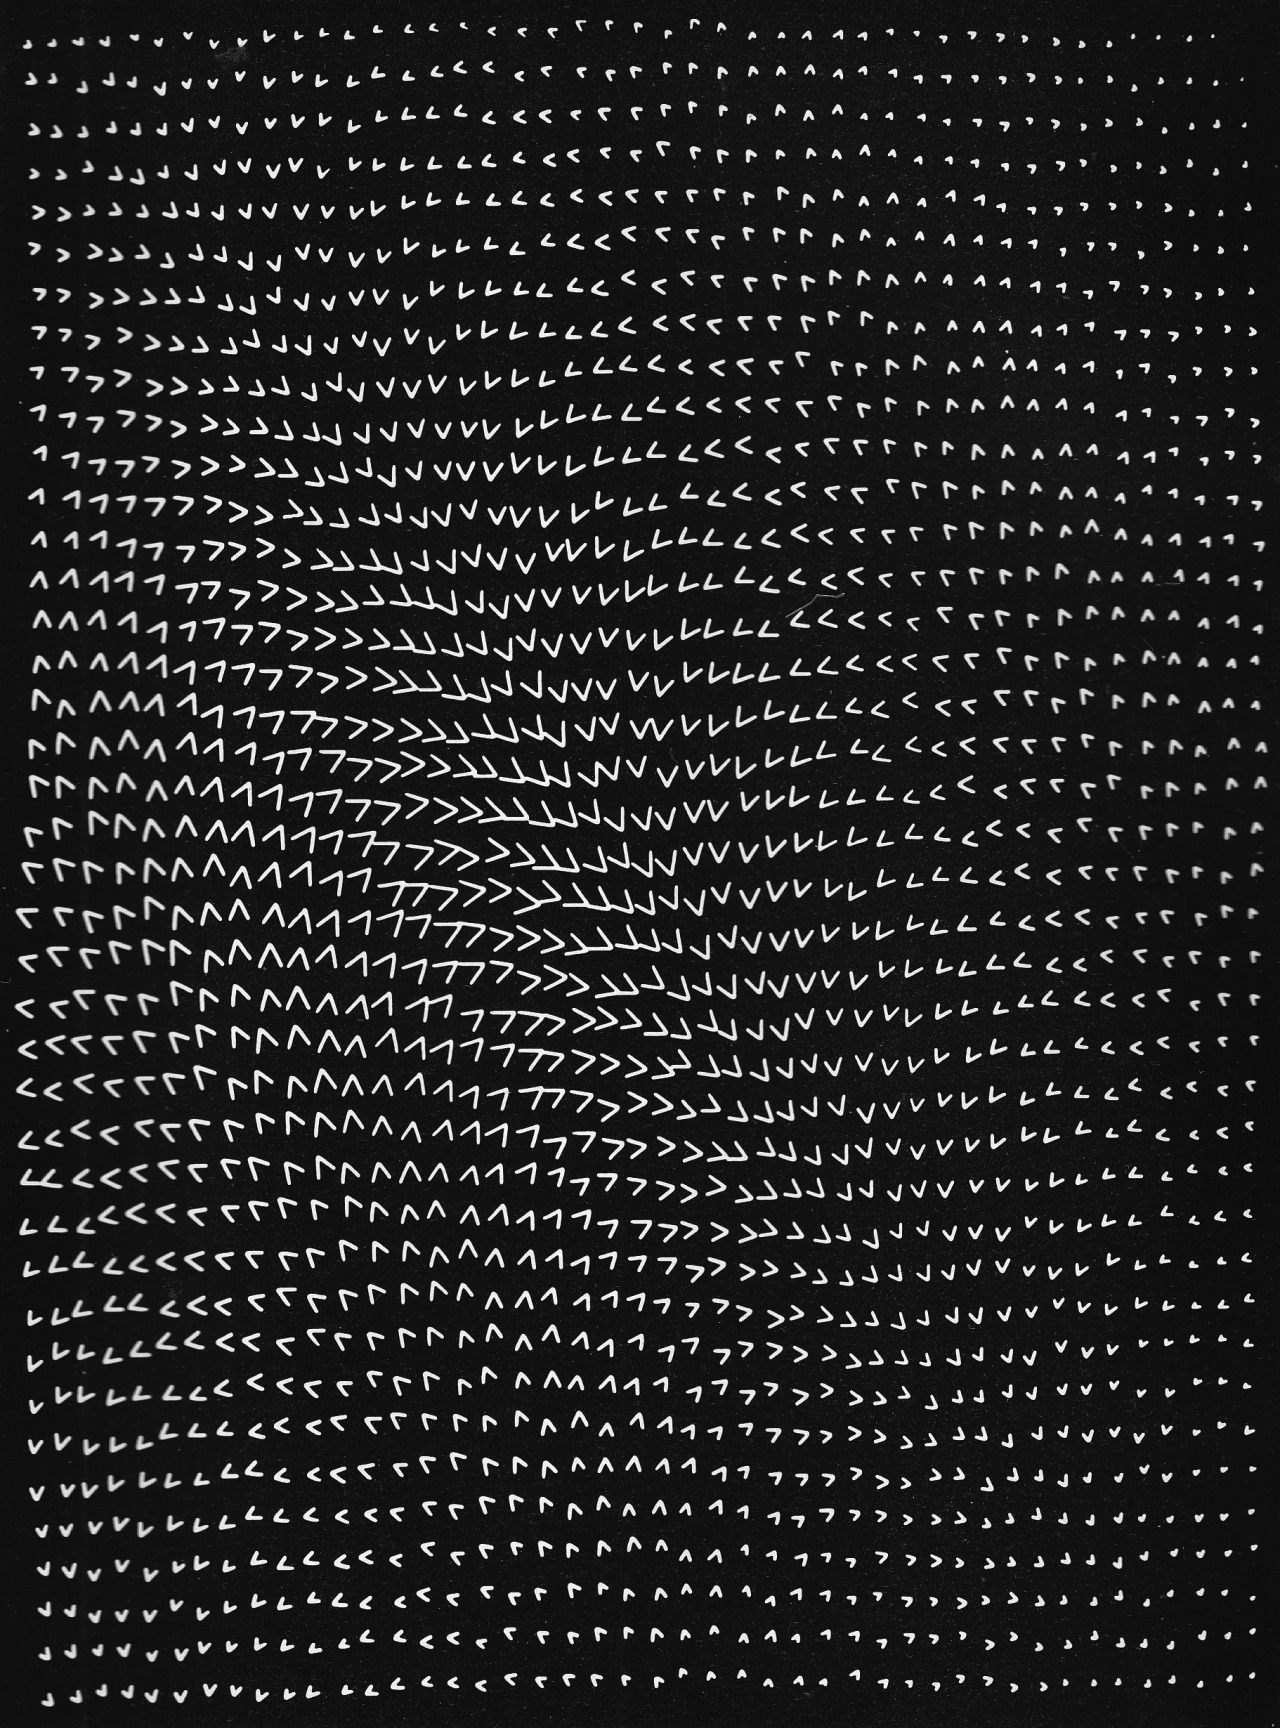 betonbabe:  MASAO KOMURA 'OPTICAL EFFECT OF INEQUALITY', COMPUTER GRAPHIC BASED ON AN ALGORITHM USING AND DISPLAYING THE GREATER-THAN SIGN, 1968